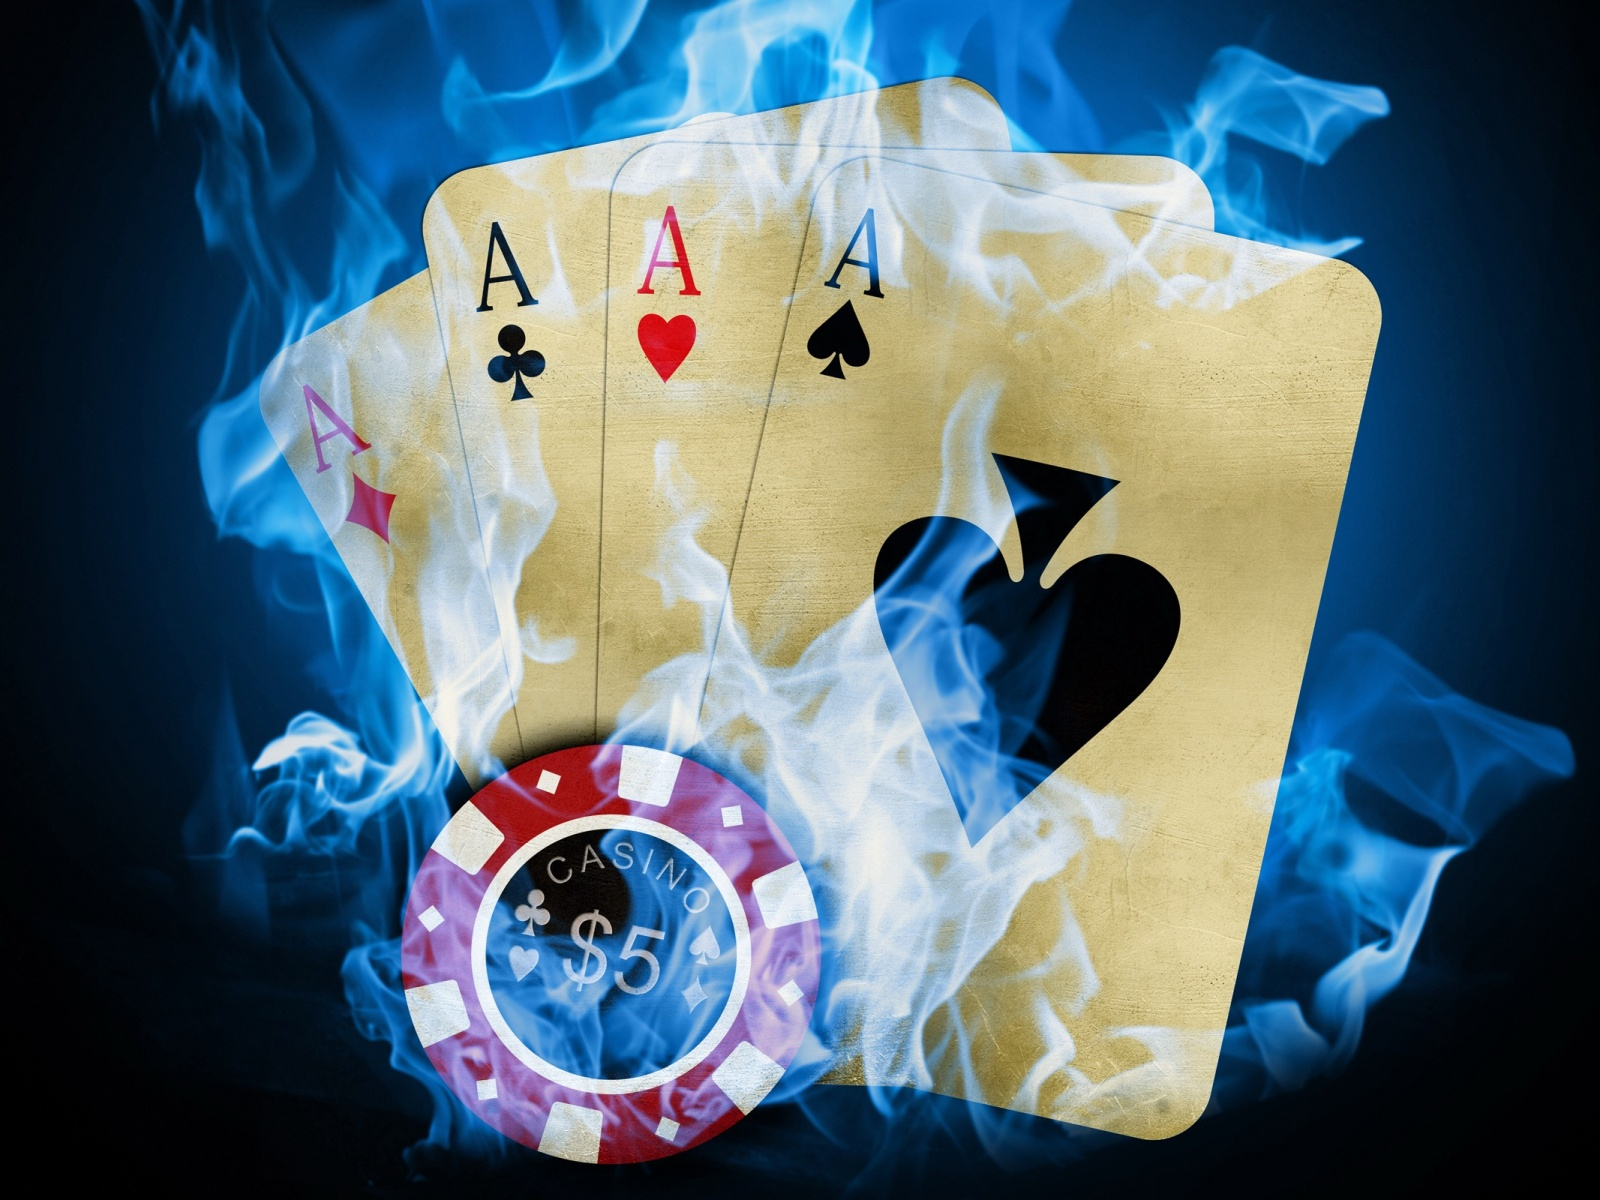 What Are The 5 Major Advantages Of Gambling